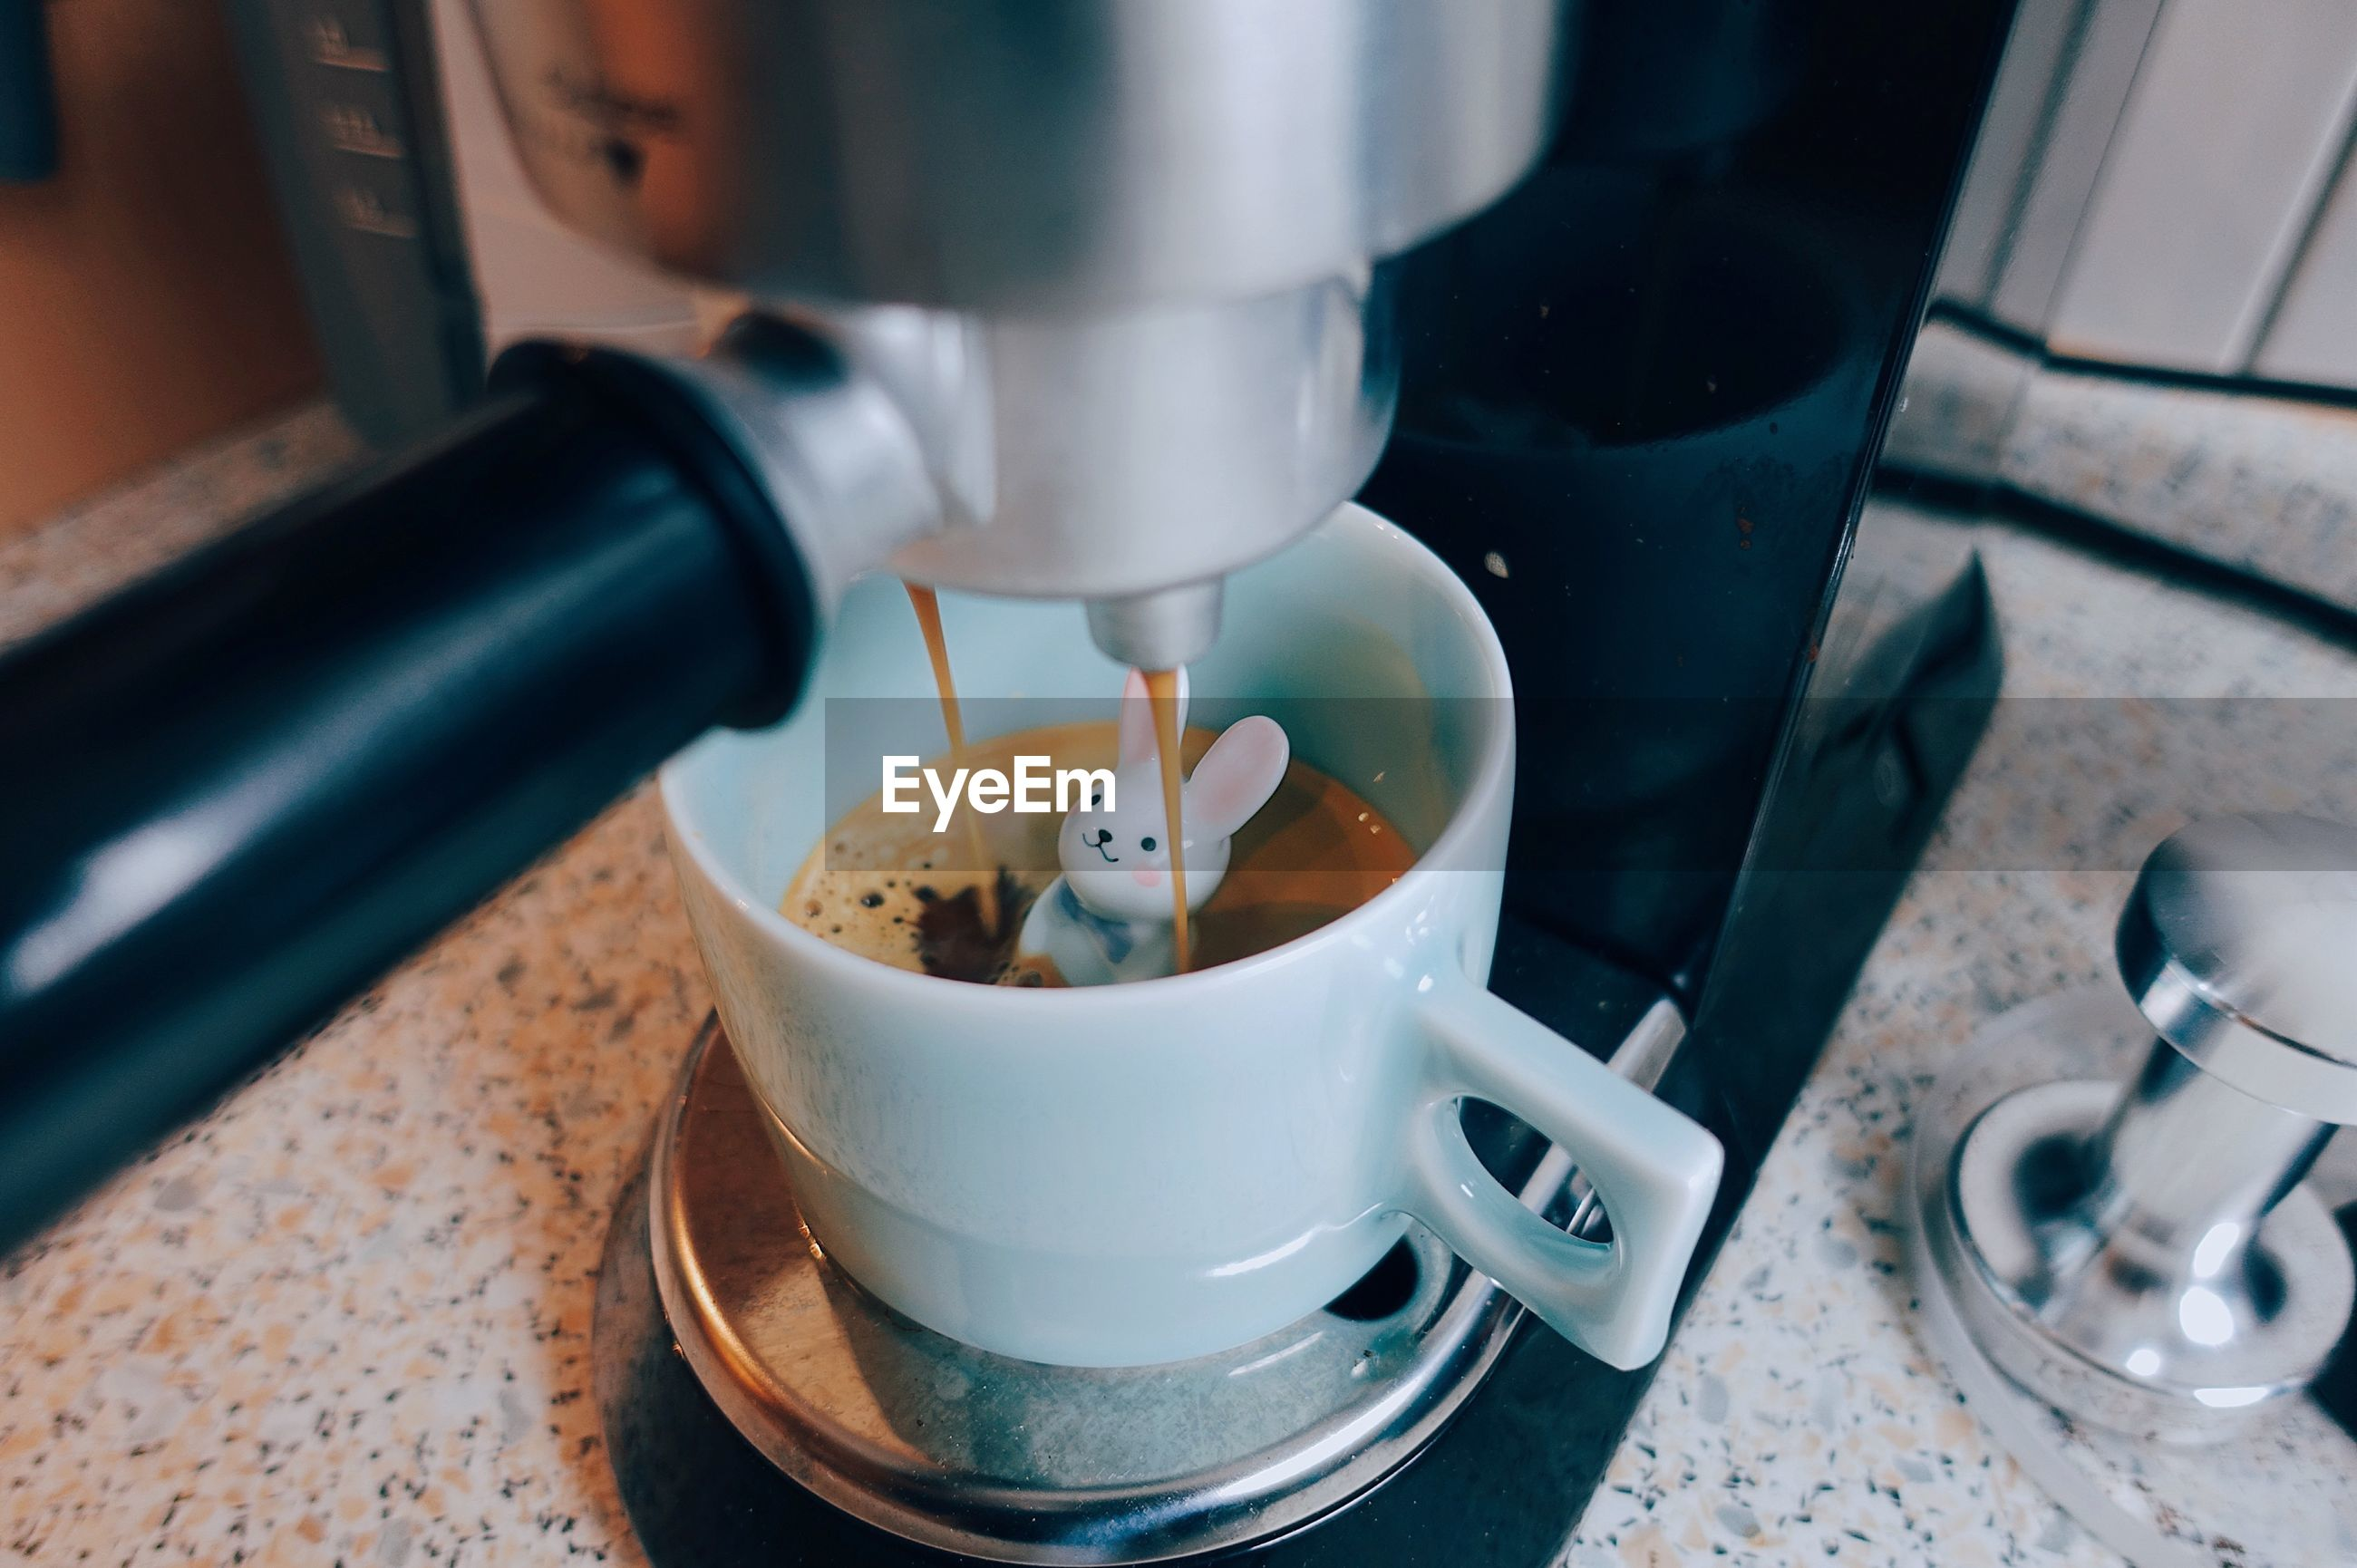 Close-up of coffee maker